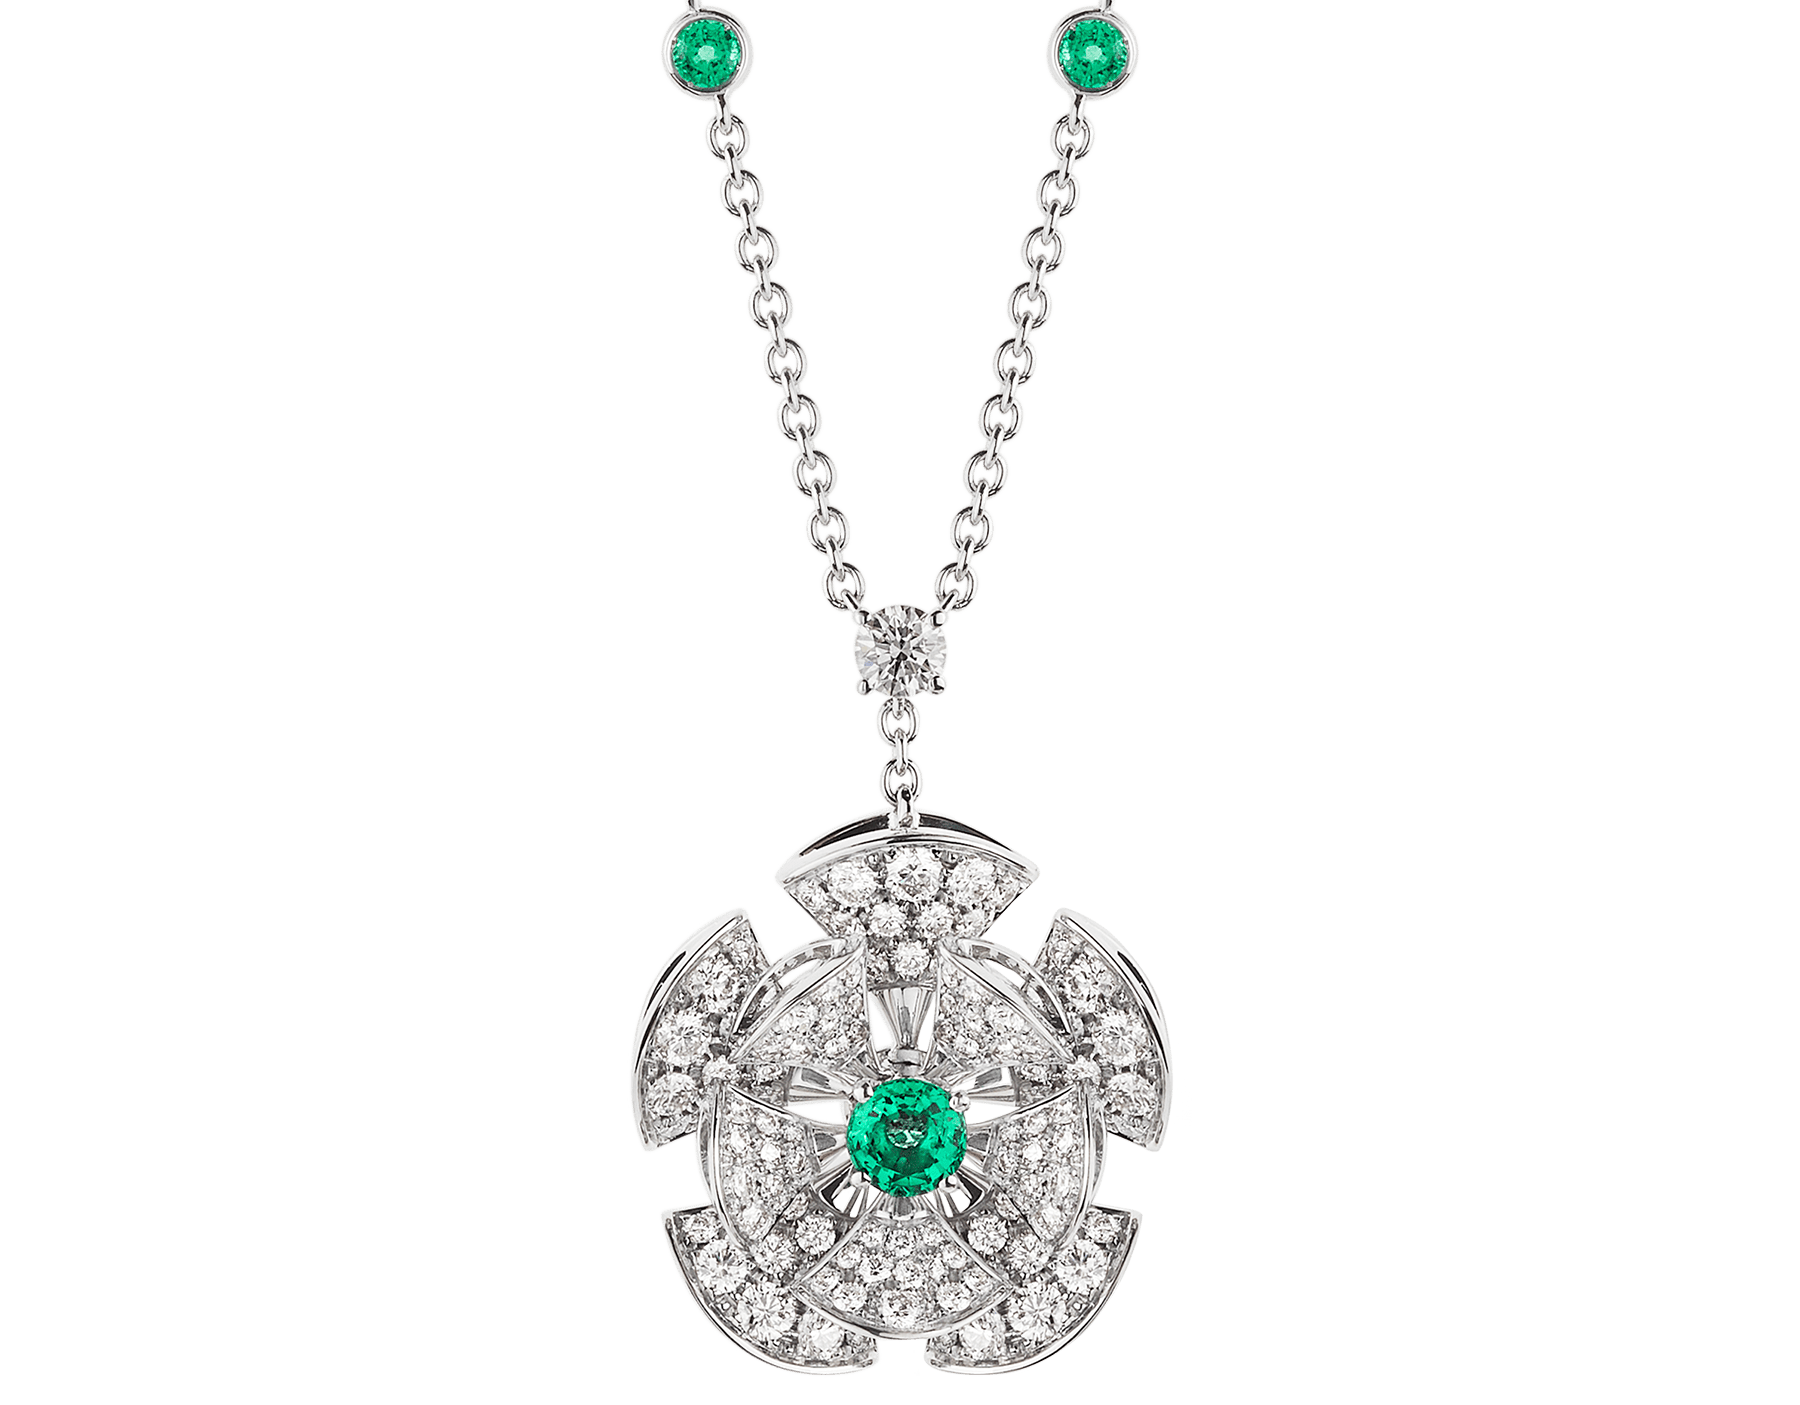 DIVAS' DREAM necklace in 18 kt white gold with chain set with emeralds and a diamond, and a pendant set with a central emerald and pavé diamonds. 352626 image 1